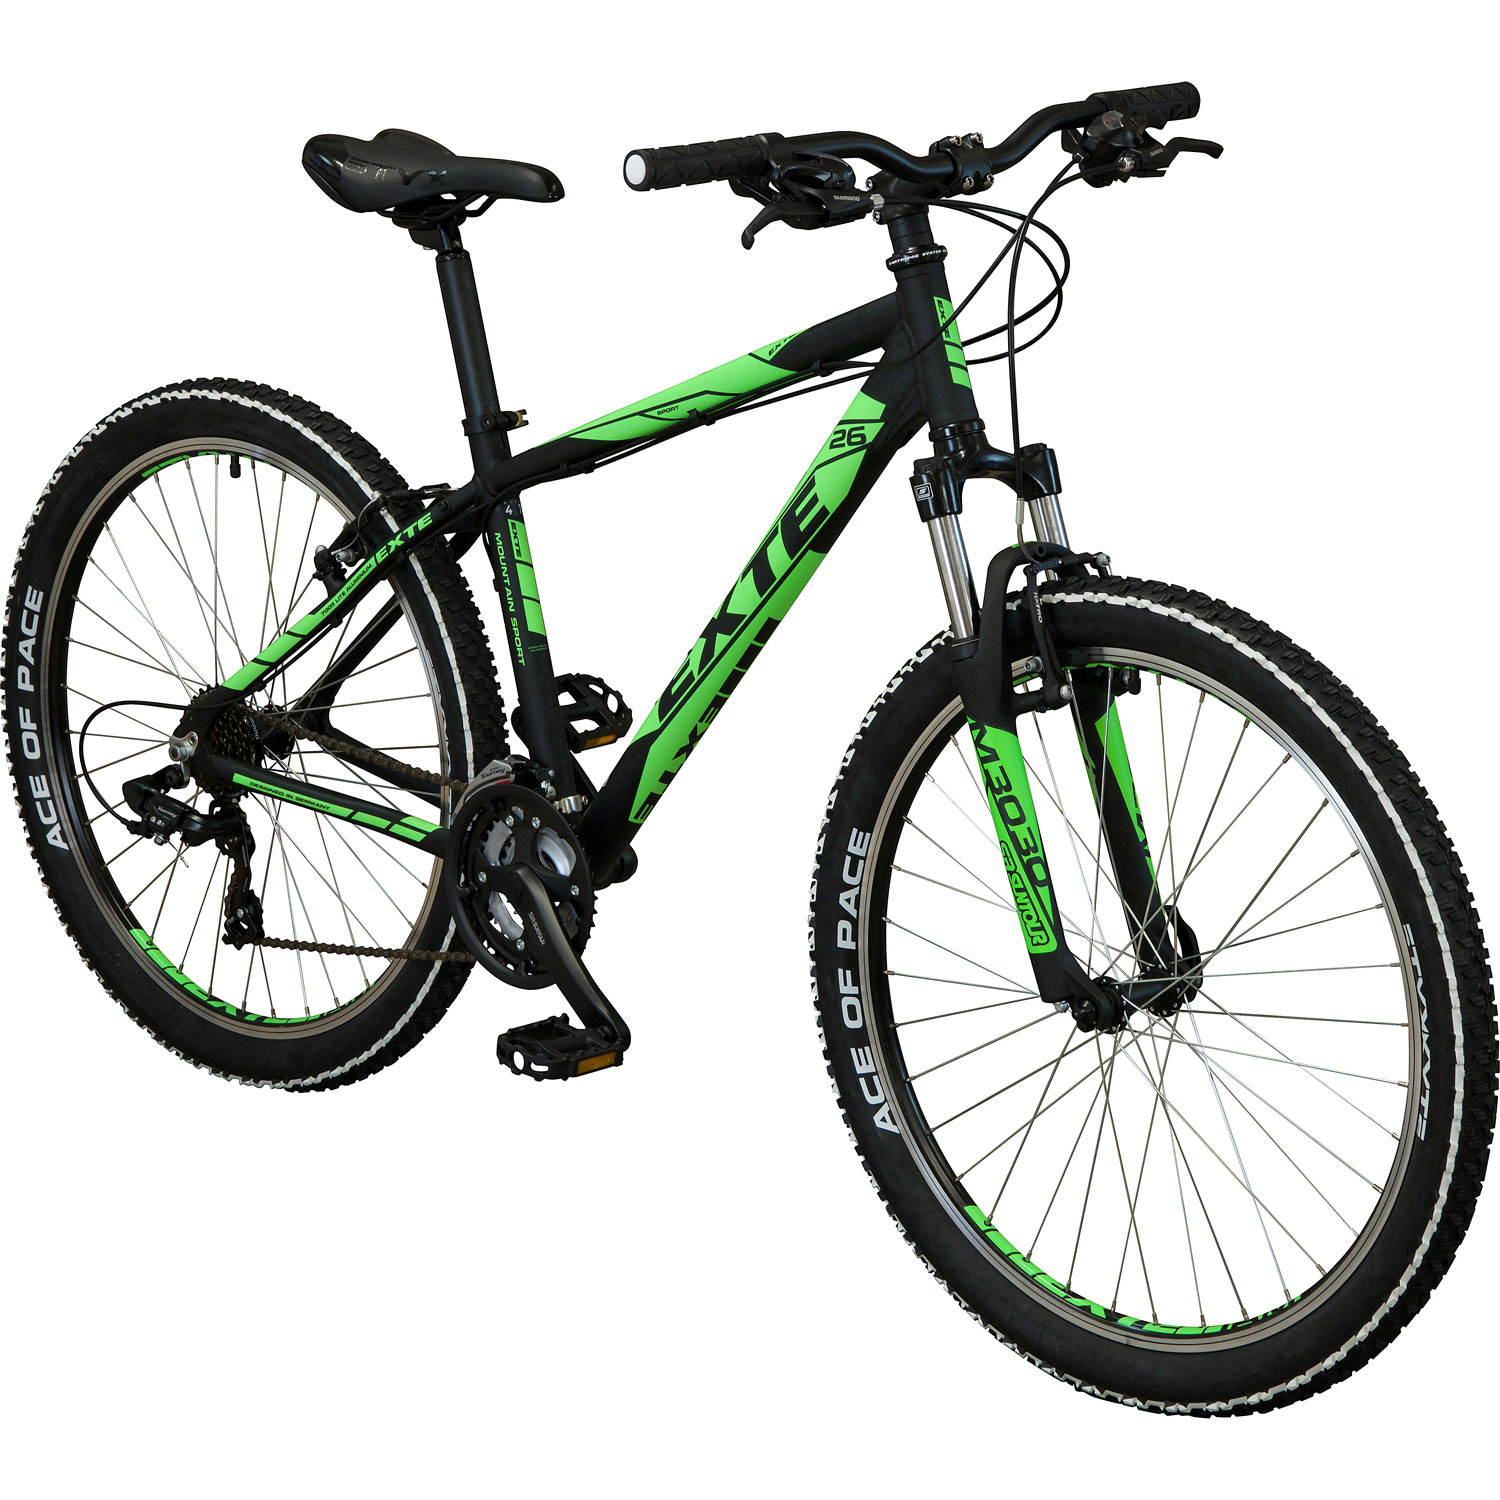 exte helium mountainbike 26 zoll schwarz neongr n 46 cm online shop zweirad stadler. Black Bedroom Furniture Sets. Home Design Ideas